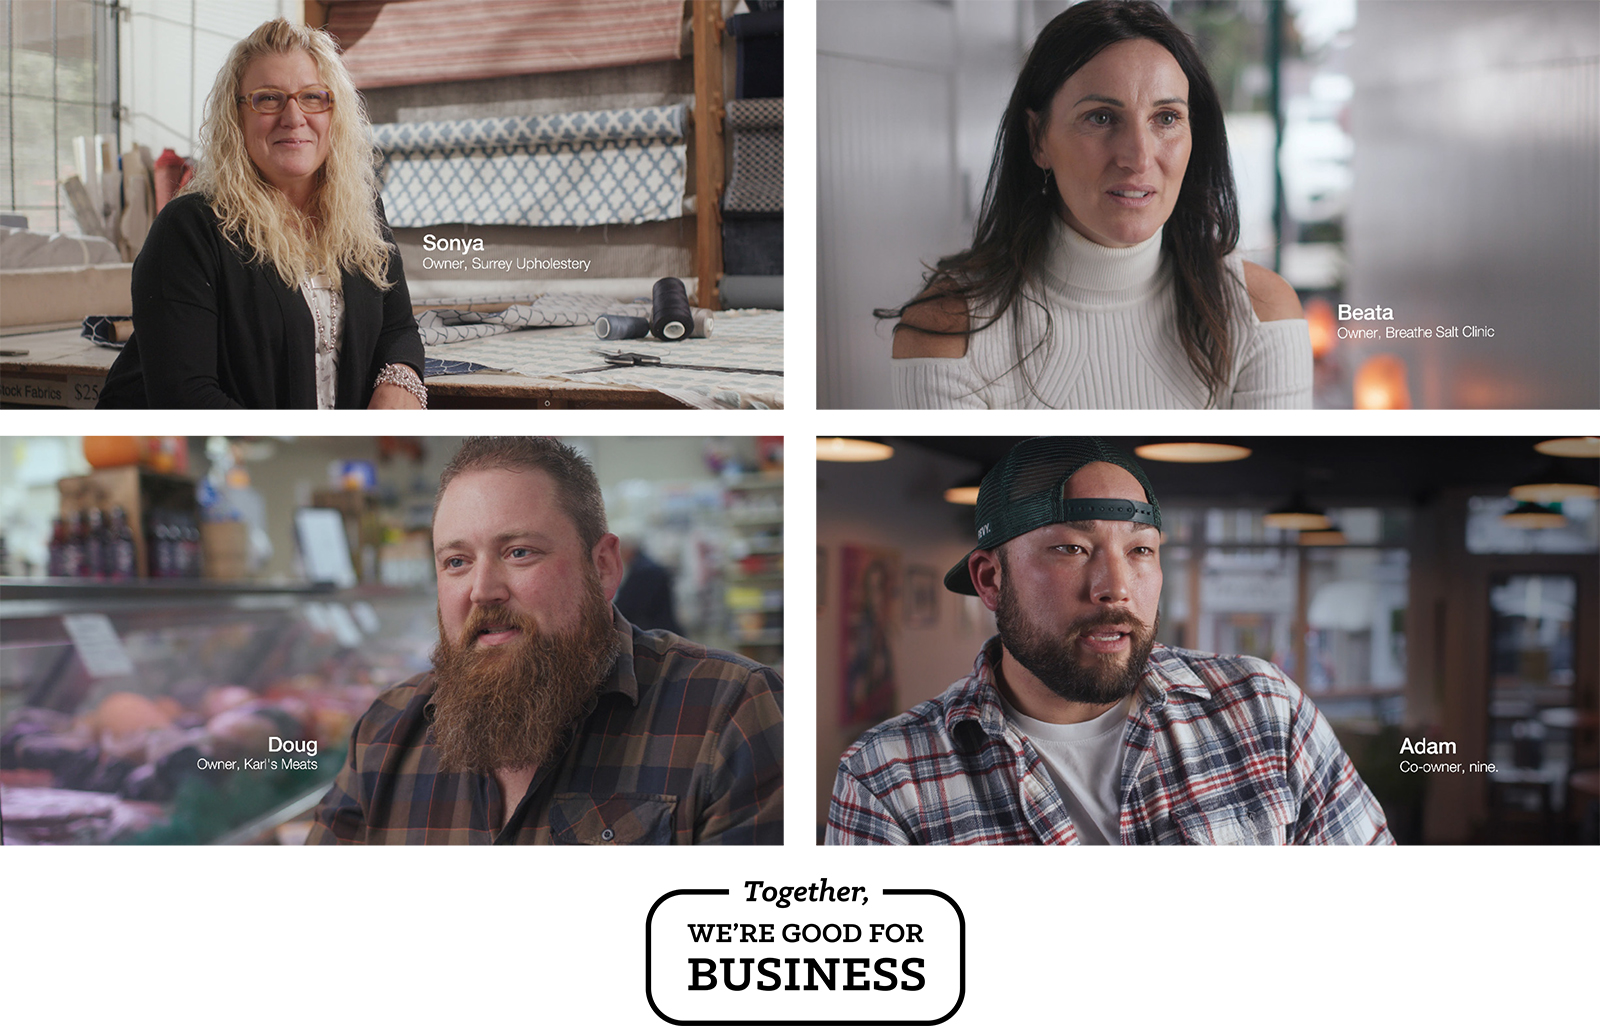 Four different panels featuring different small business owners.